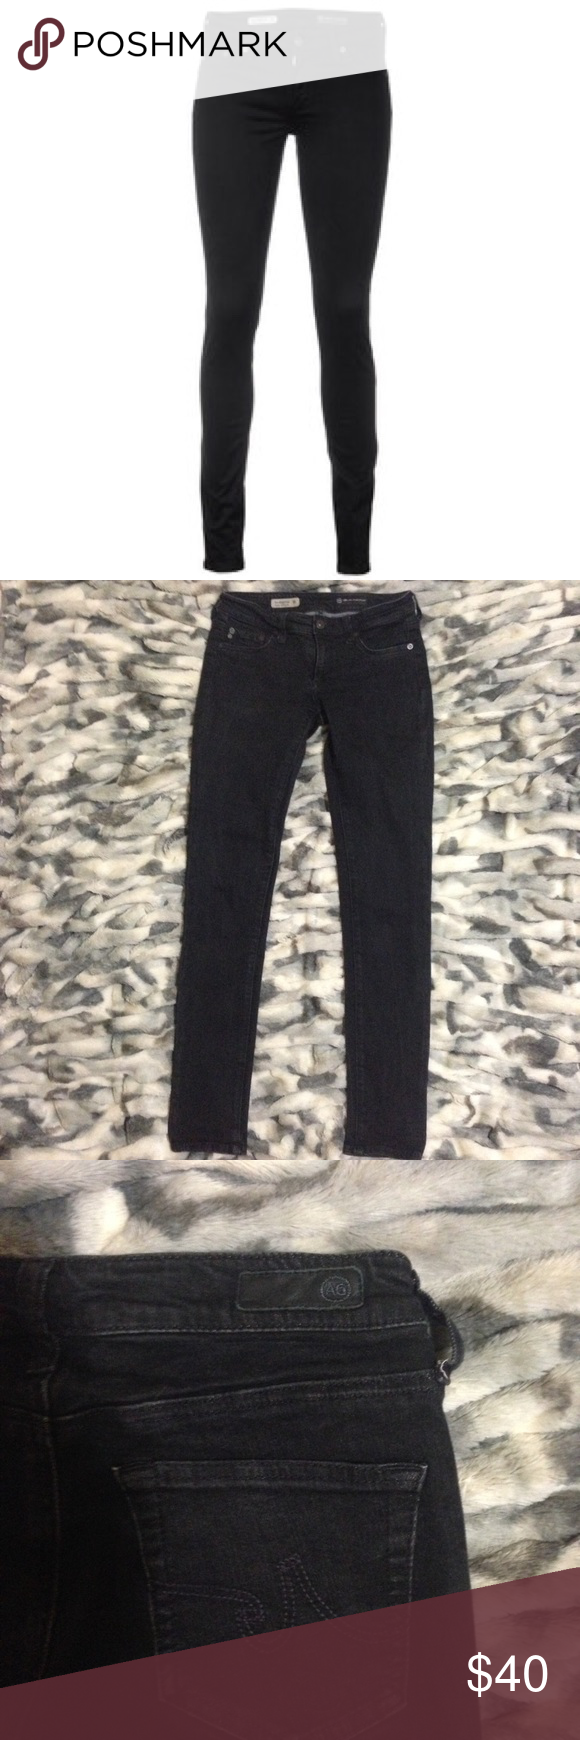 "AG Jeans Jegging Super Skinny Fit Black AG Jeans Jegging Super Skinny Fit Black...sz 26R ..Inseam 29""..Excellent condition AG Adriano Goldschmied Jeans"